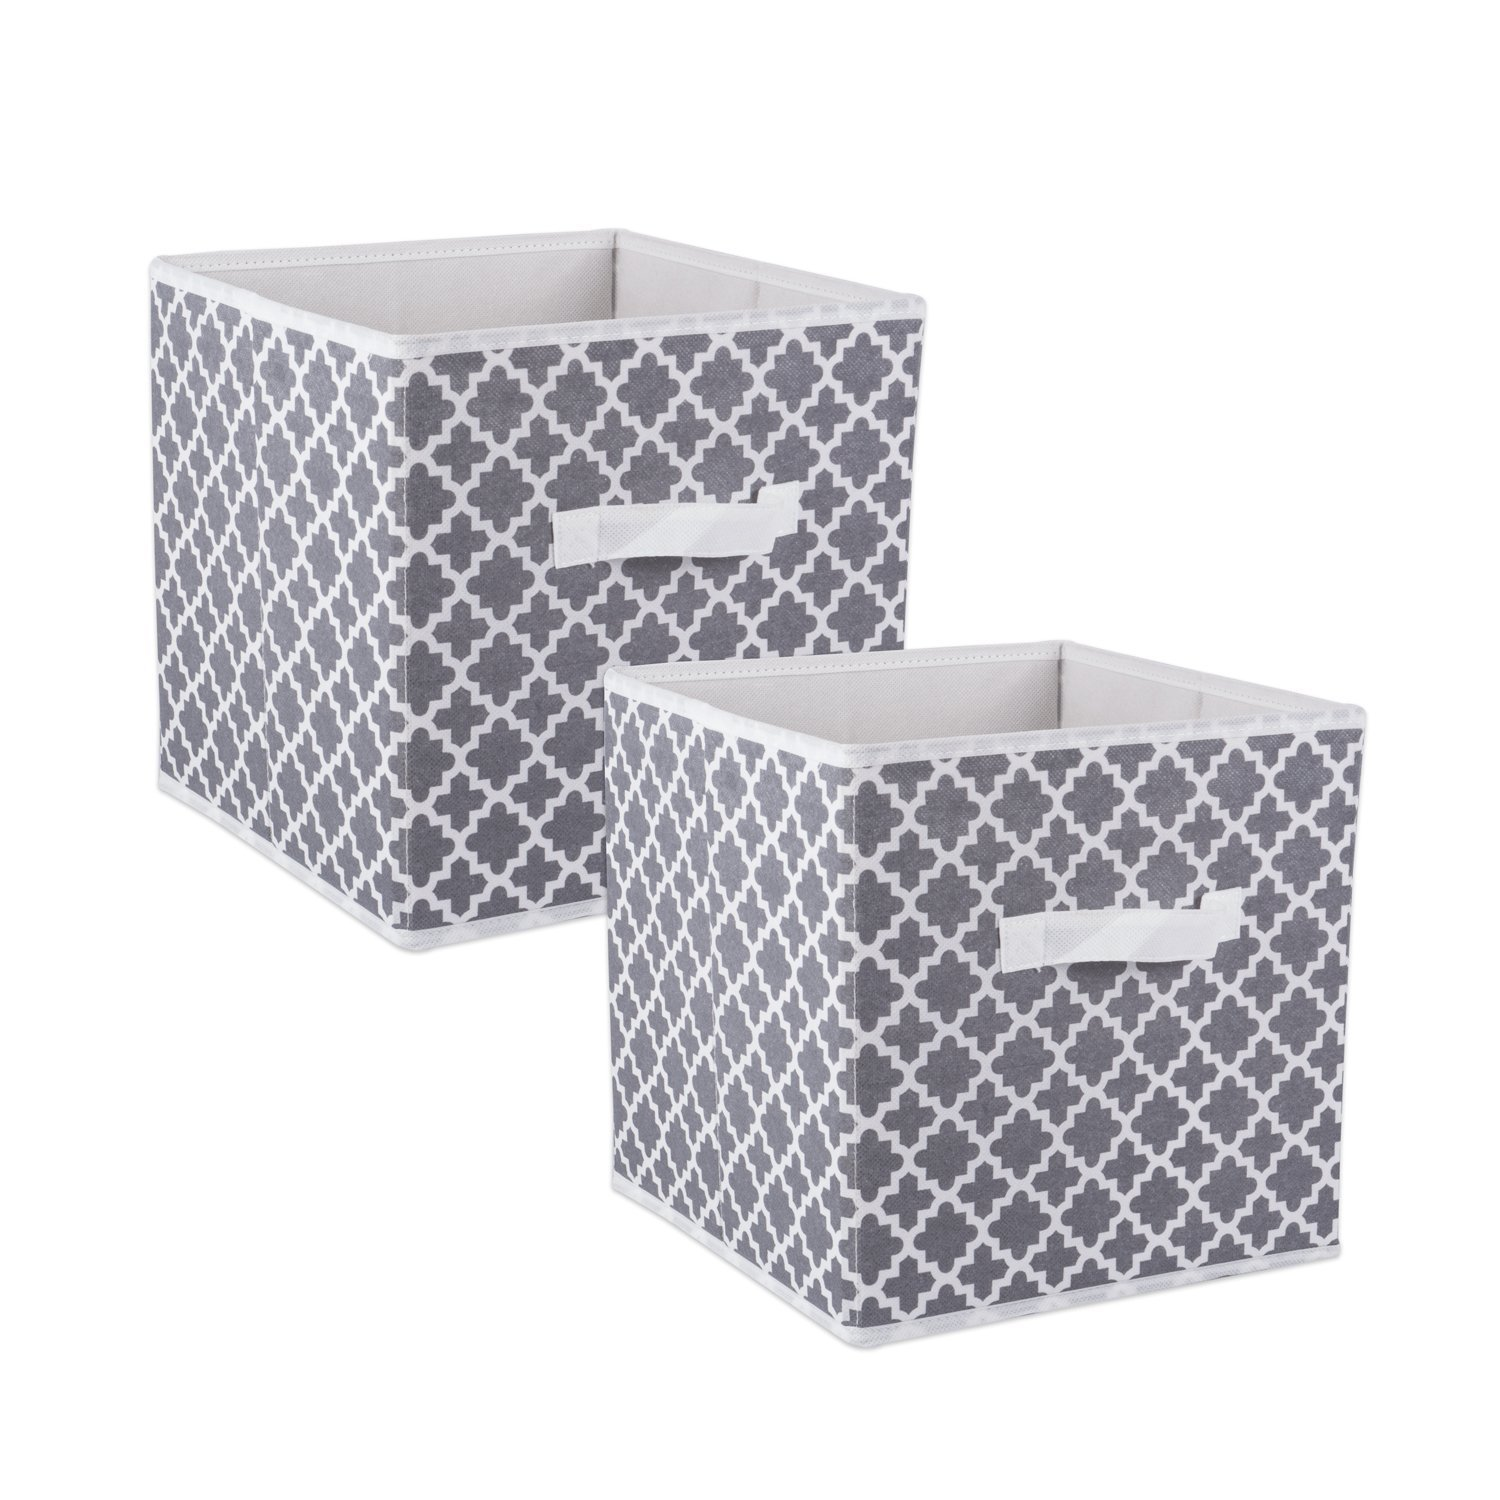 DII Fabric Storage Bins for Nursery, Offices, & Home Organization, Containers Are Made To Fit Standard Cube Organizers (13x13x13'') Lattice Gray - Set of 2